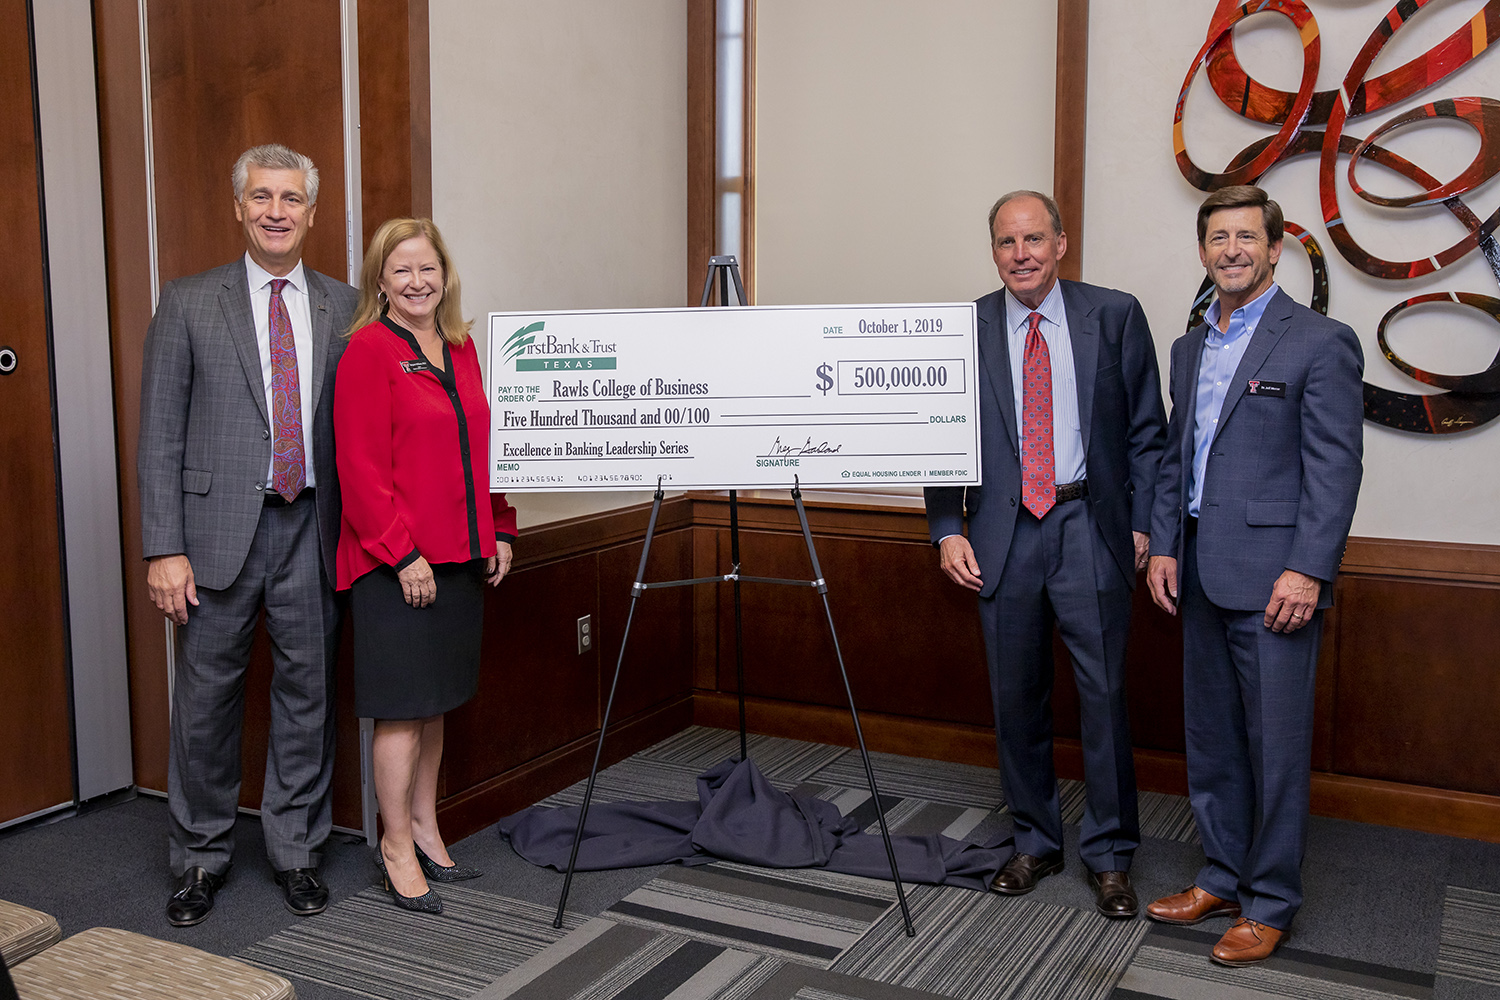 FirstBank & Trust Texas Rawls College of Business check presentation